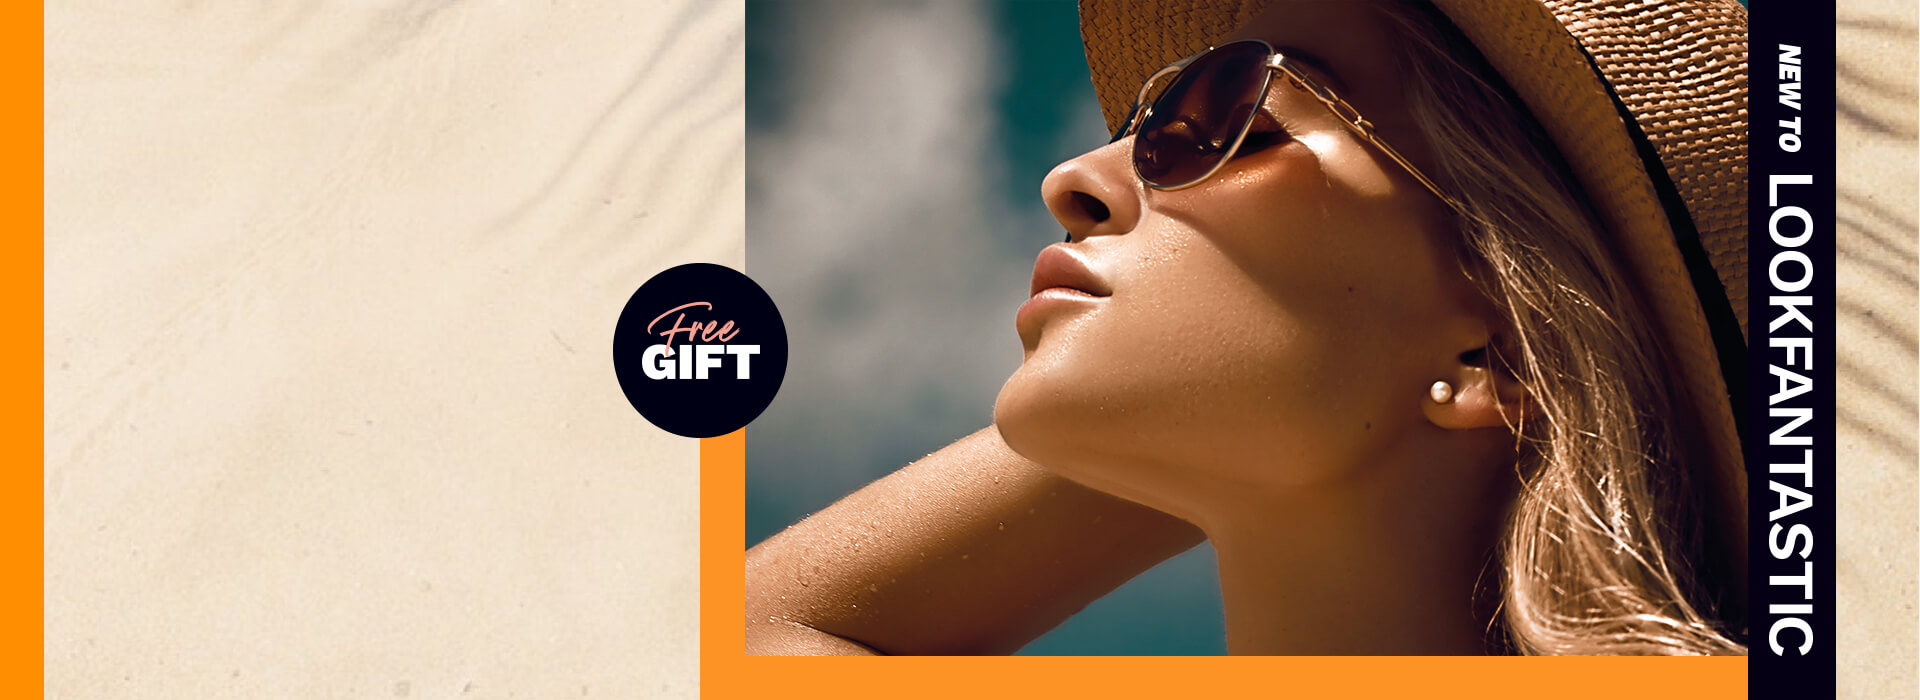 Discover dr russo the brand who are committed to preventing sun damage. shop now